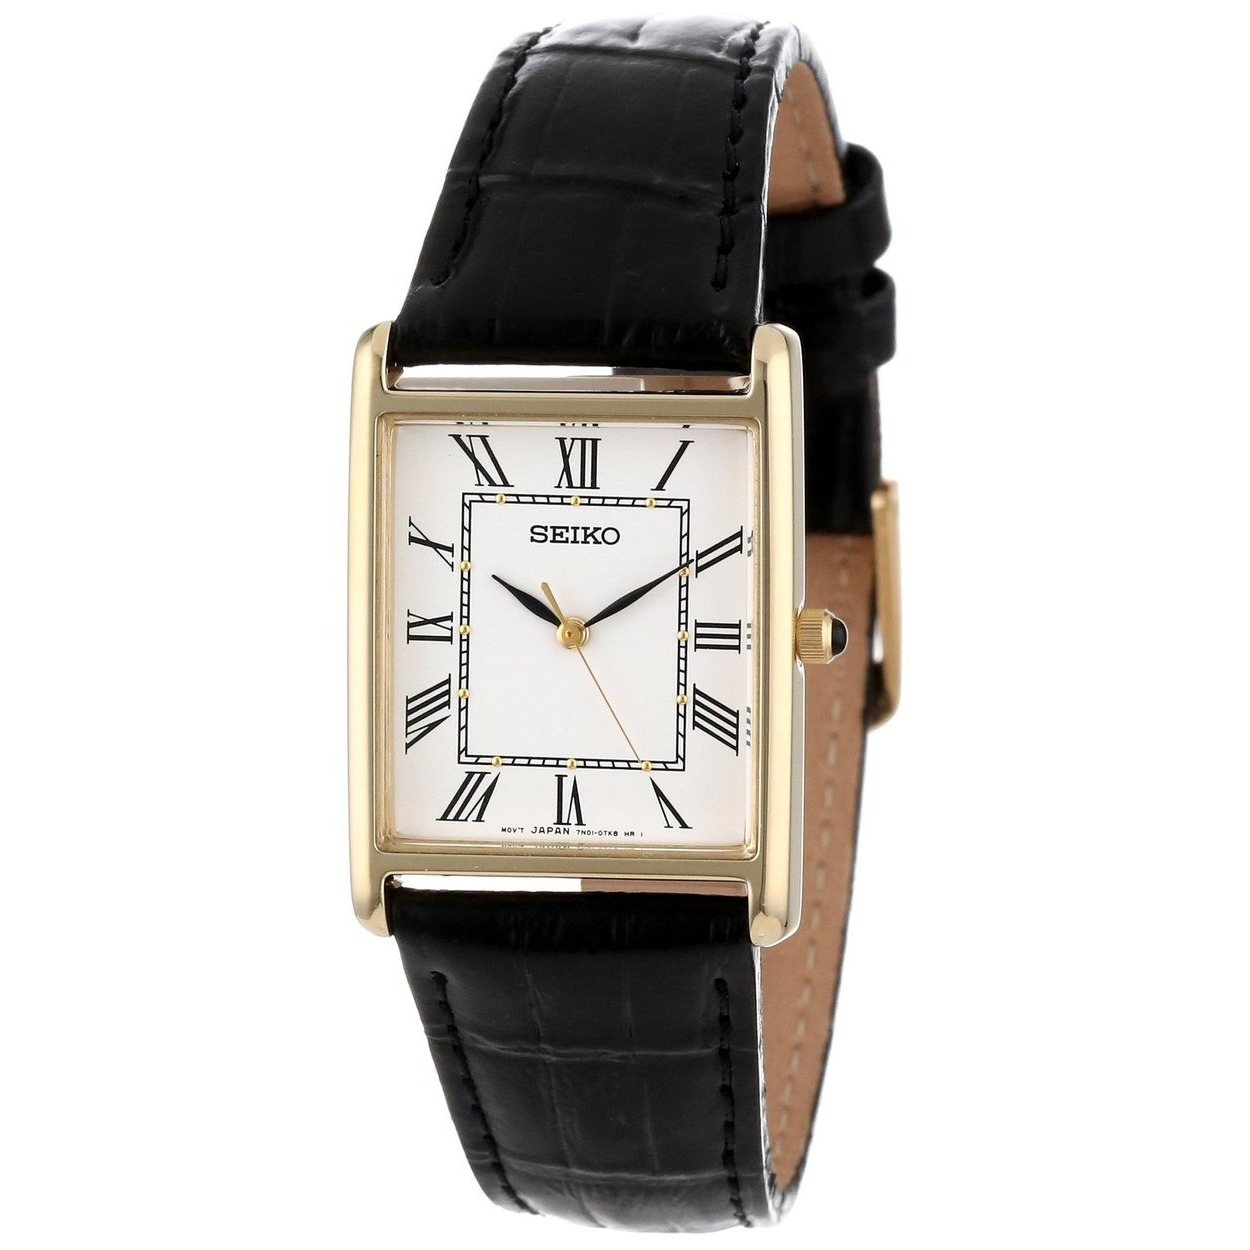 time paris around rectangular philippe men mollet patek vintage second s for gold case made agent watches a guillermin unique sale shape watch yellow with